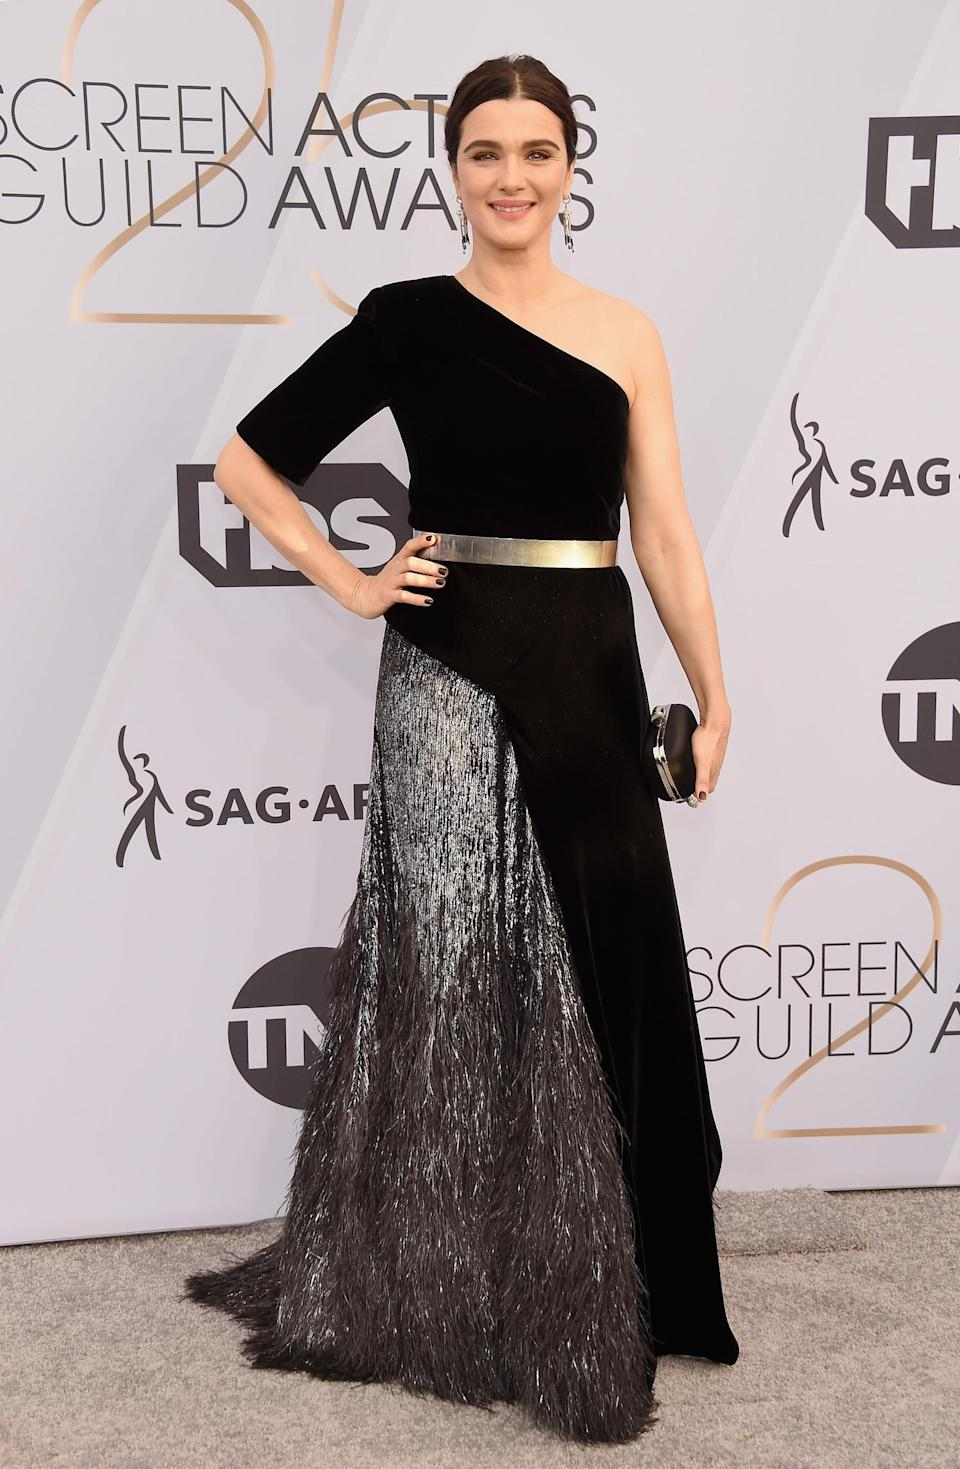 <p>Rachel Weisz wore an off-the-shoulder gown at the 2019 Screen Actors Guild Awards in Los Angeles. (Photo: Getty Images) </p>